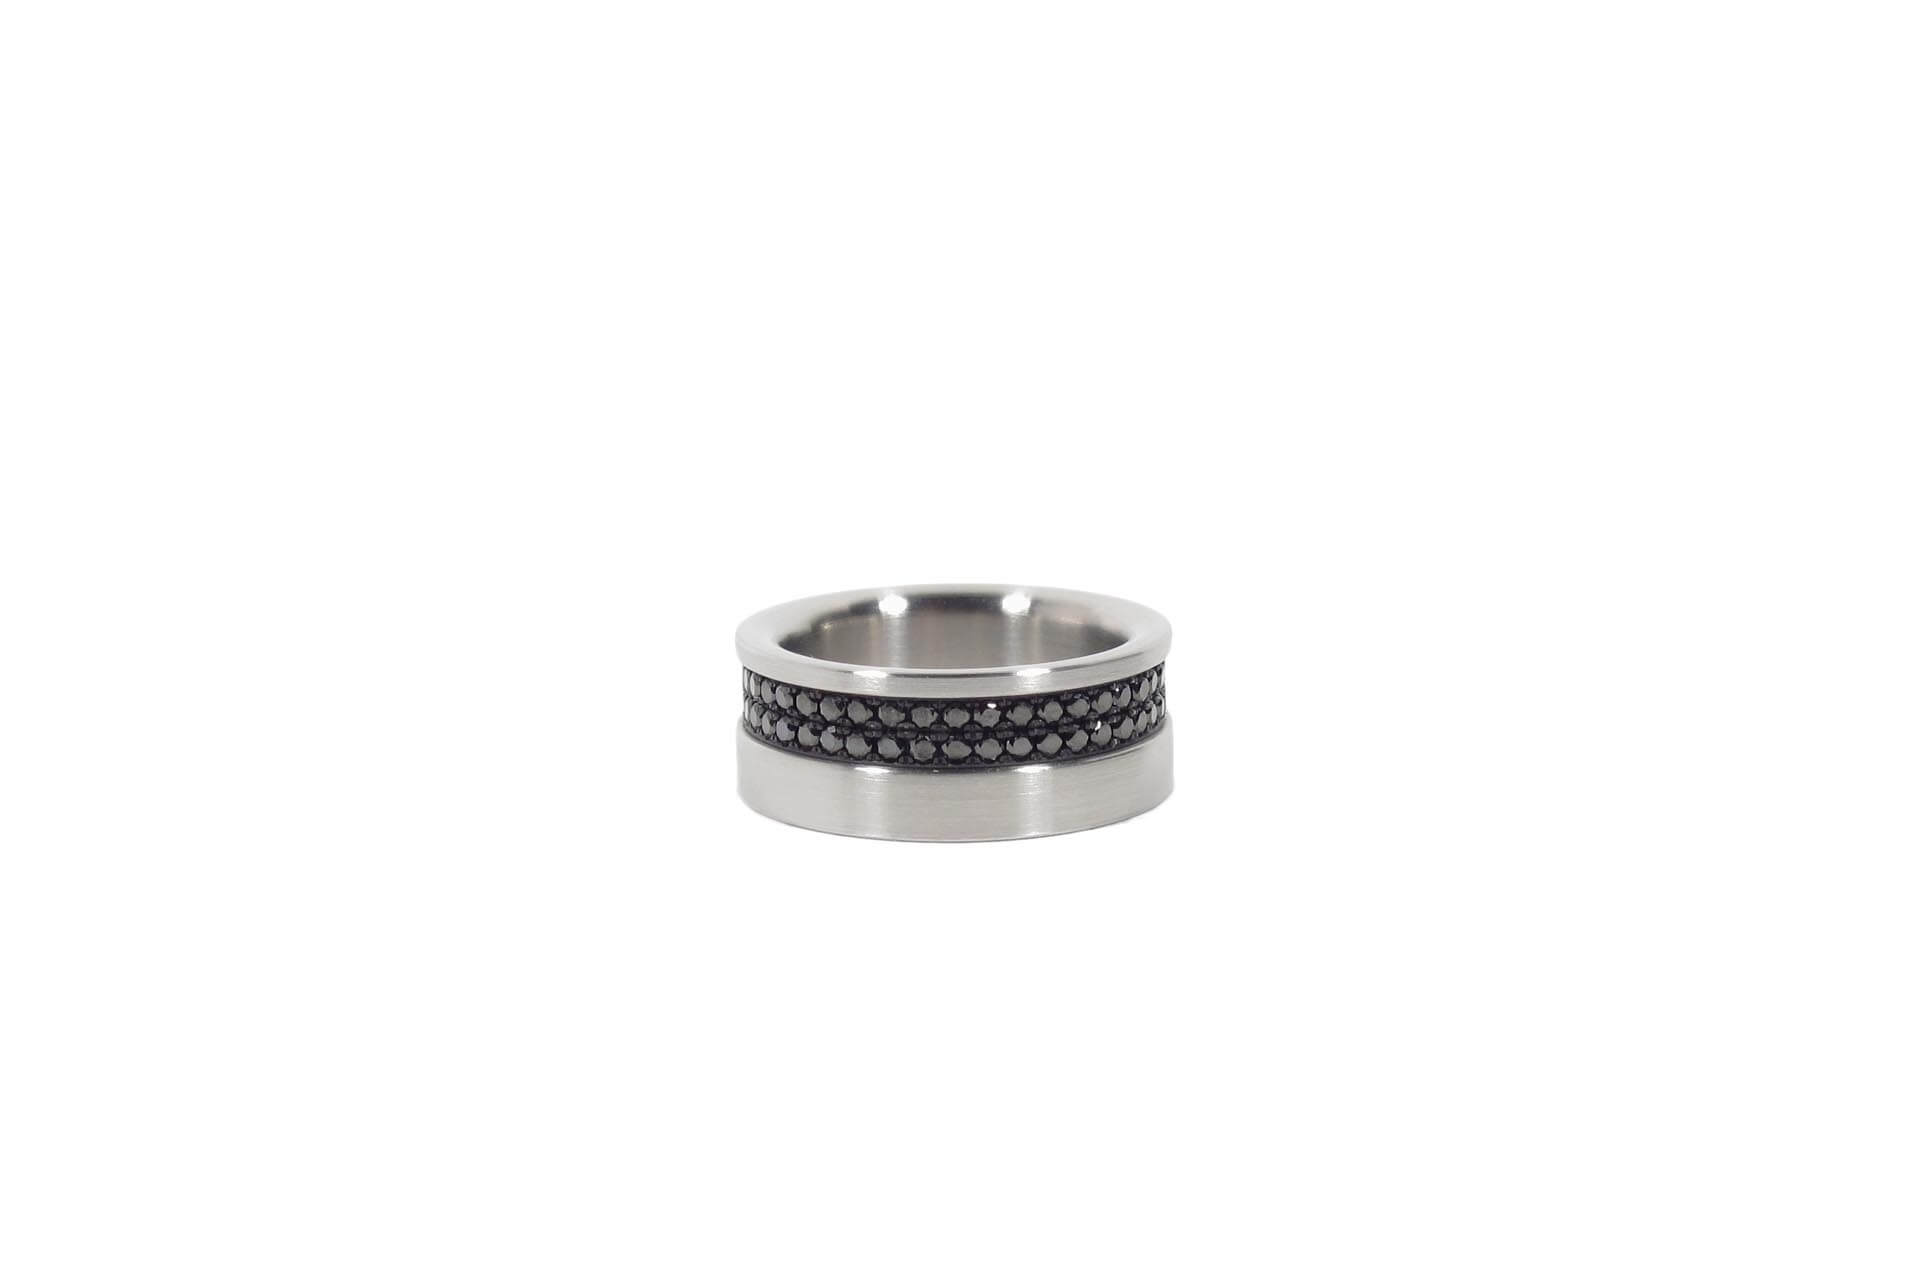 Stainless steel ring with 86 black diamonds. M.9.002